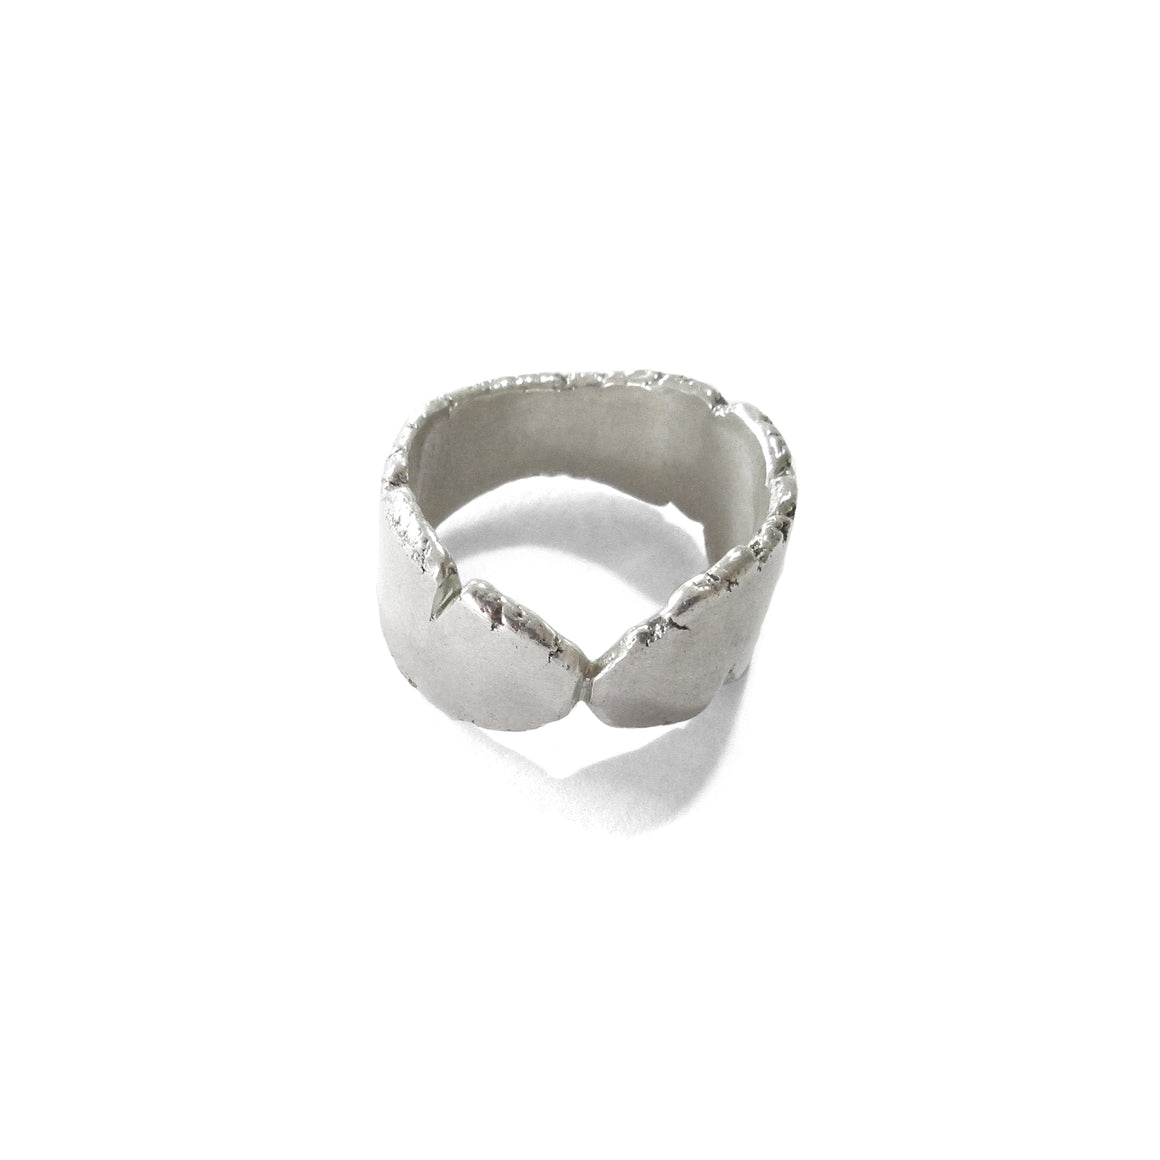 handmade, one of a kind silver unisex mens ring by Seth Papac Jewelry